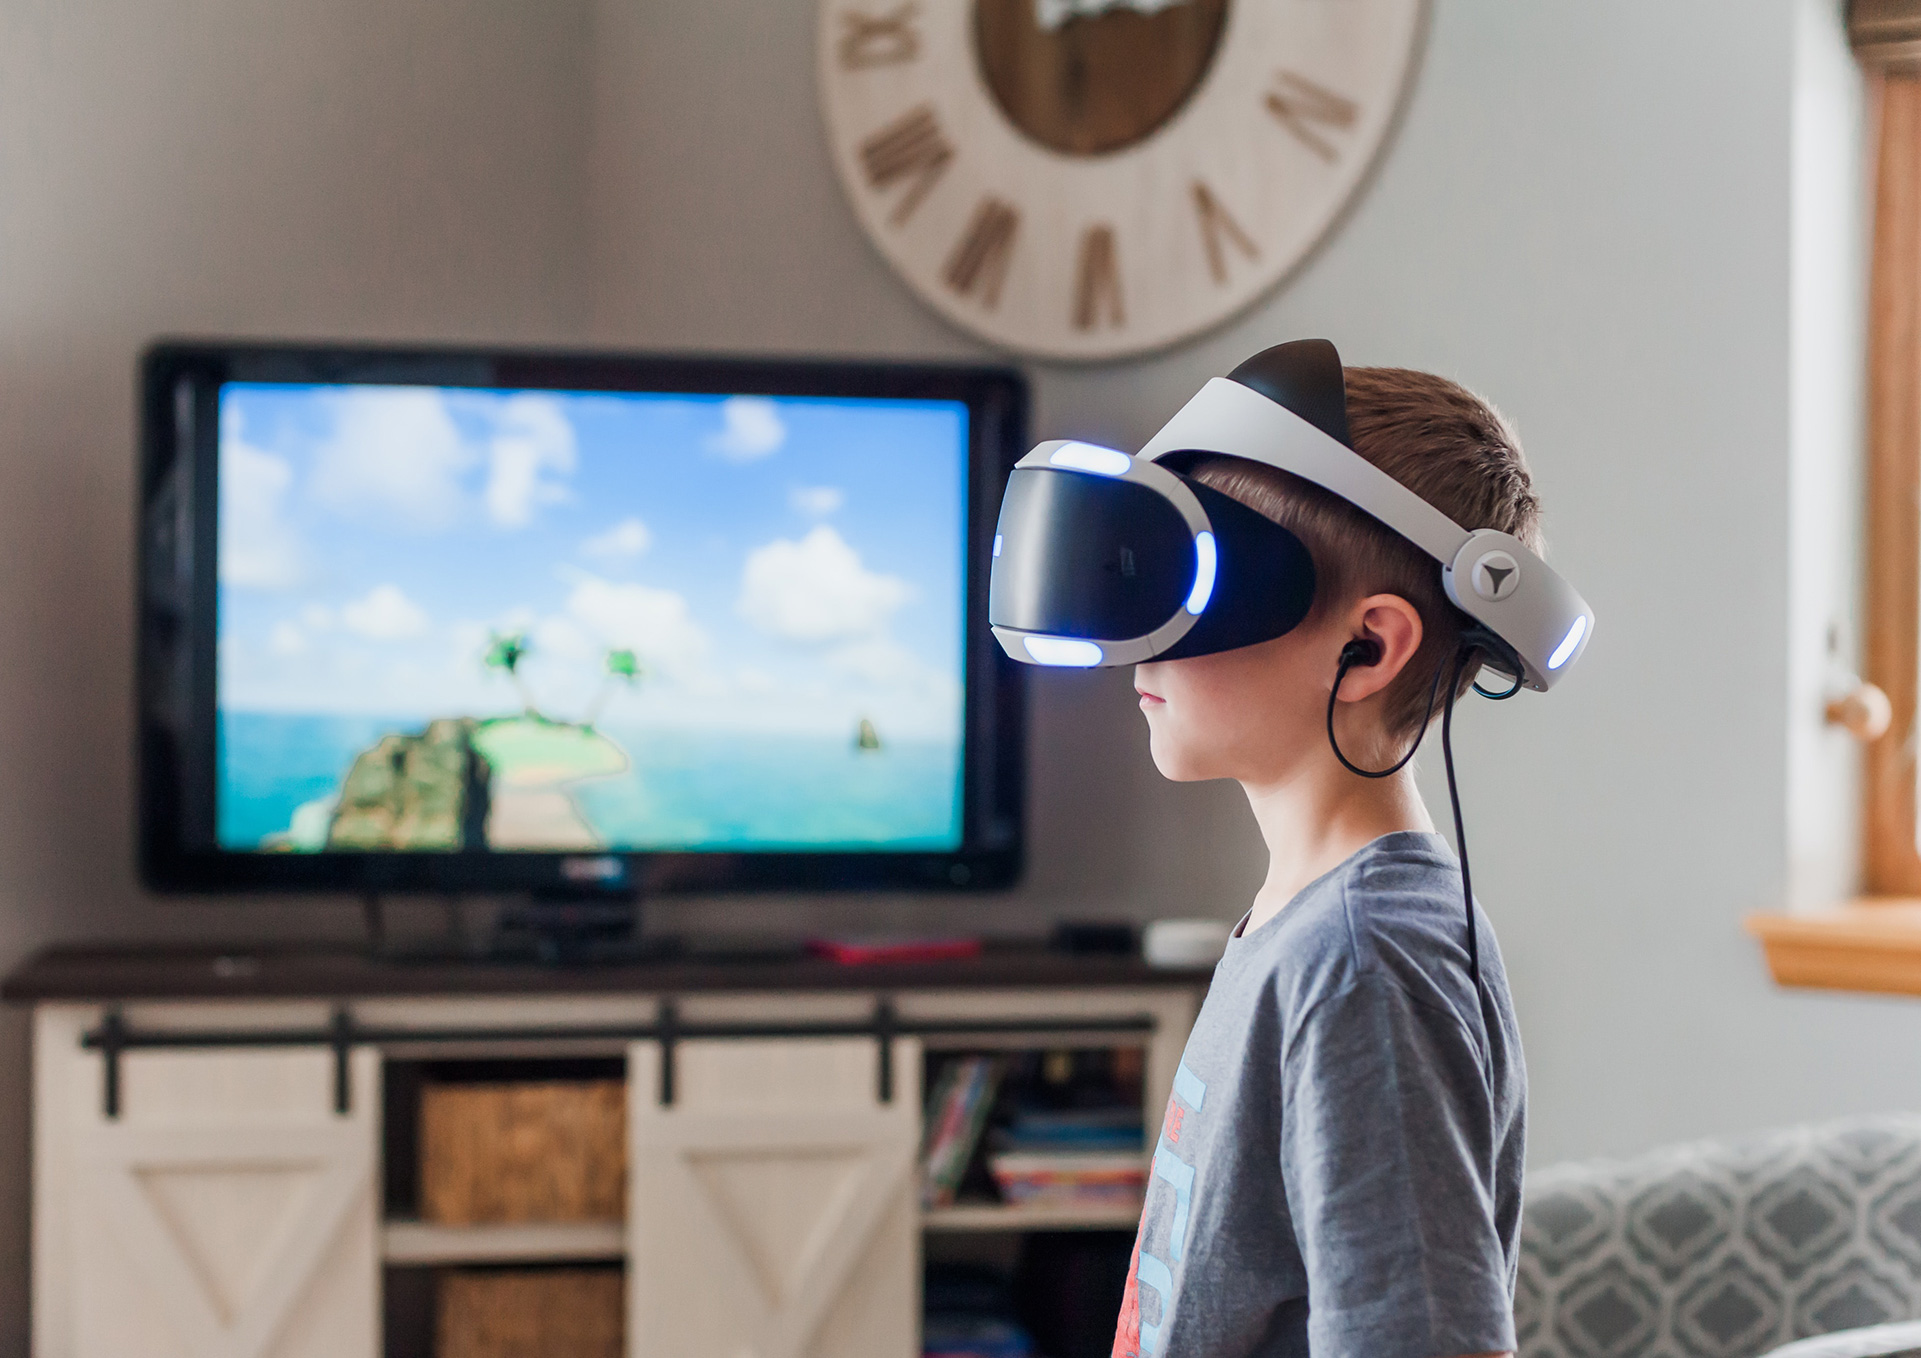 The Effect of Narrative on Physical Activity via Immersion During Active Video Game Play in Children, Mediation Analysis, March 2020